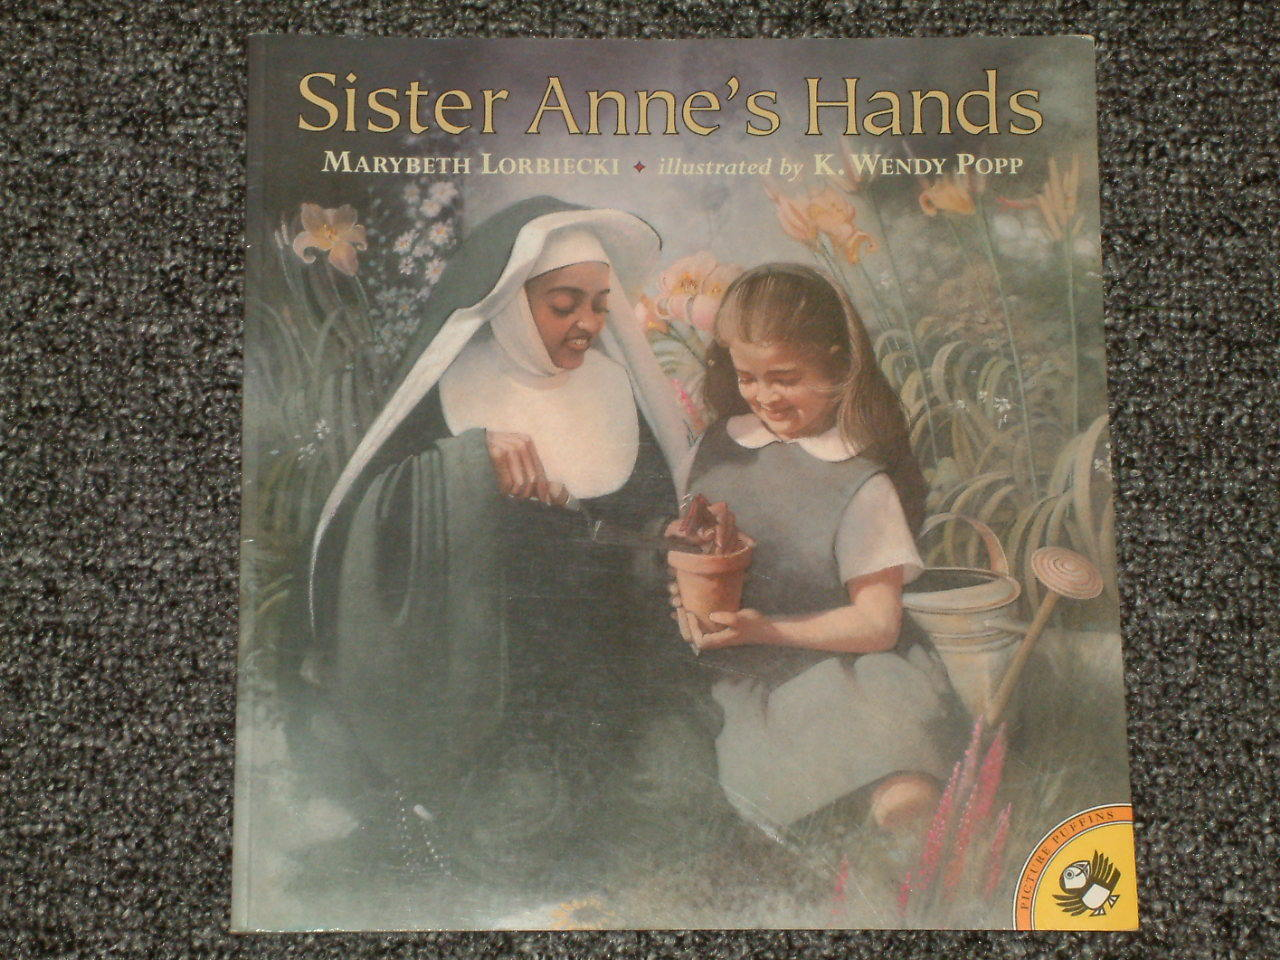 Primary image for Sister Anne's Hands by Marybeth Lorbiecki